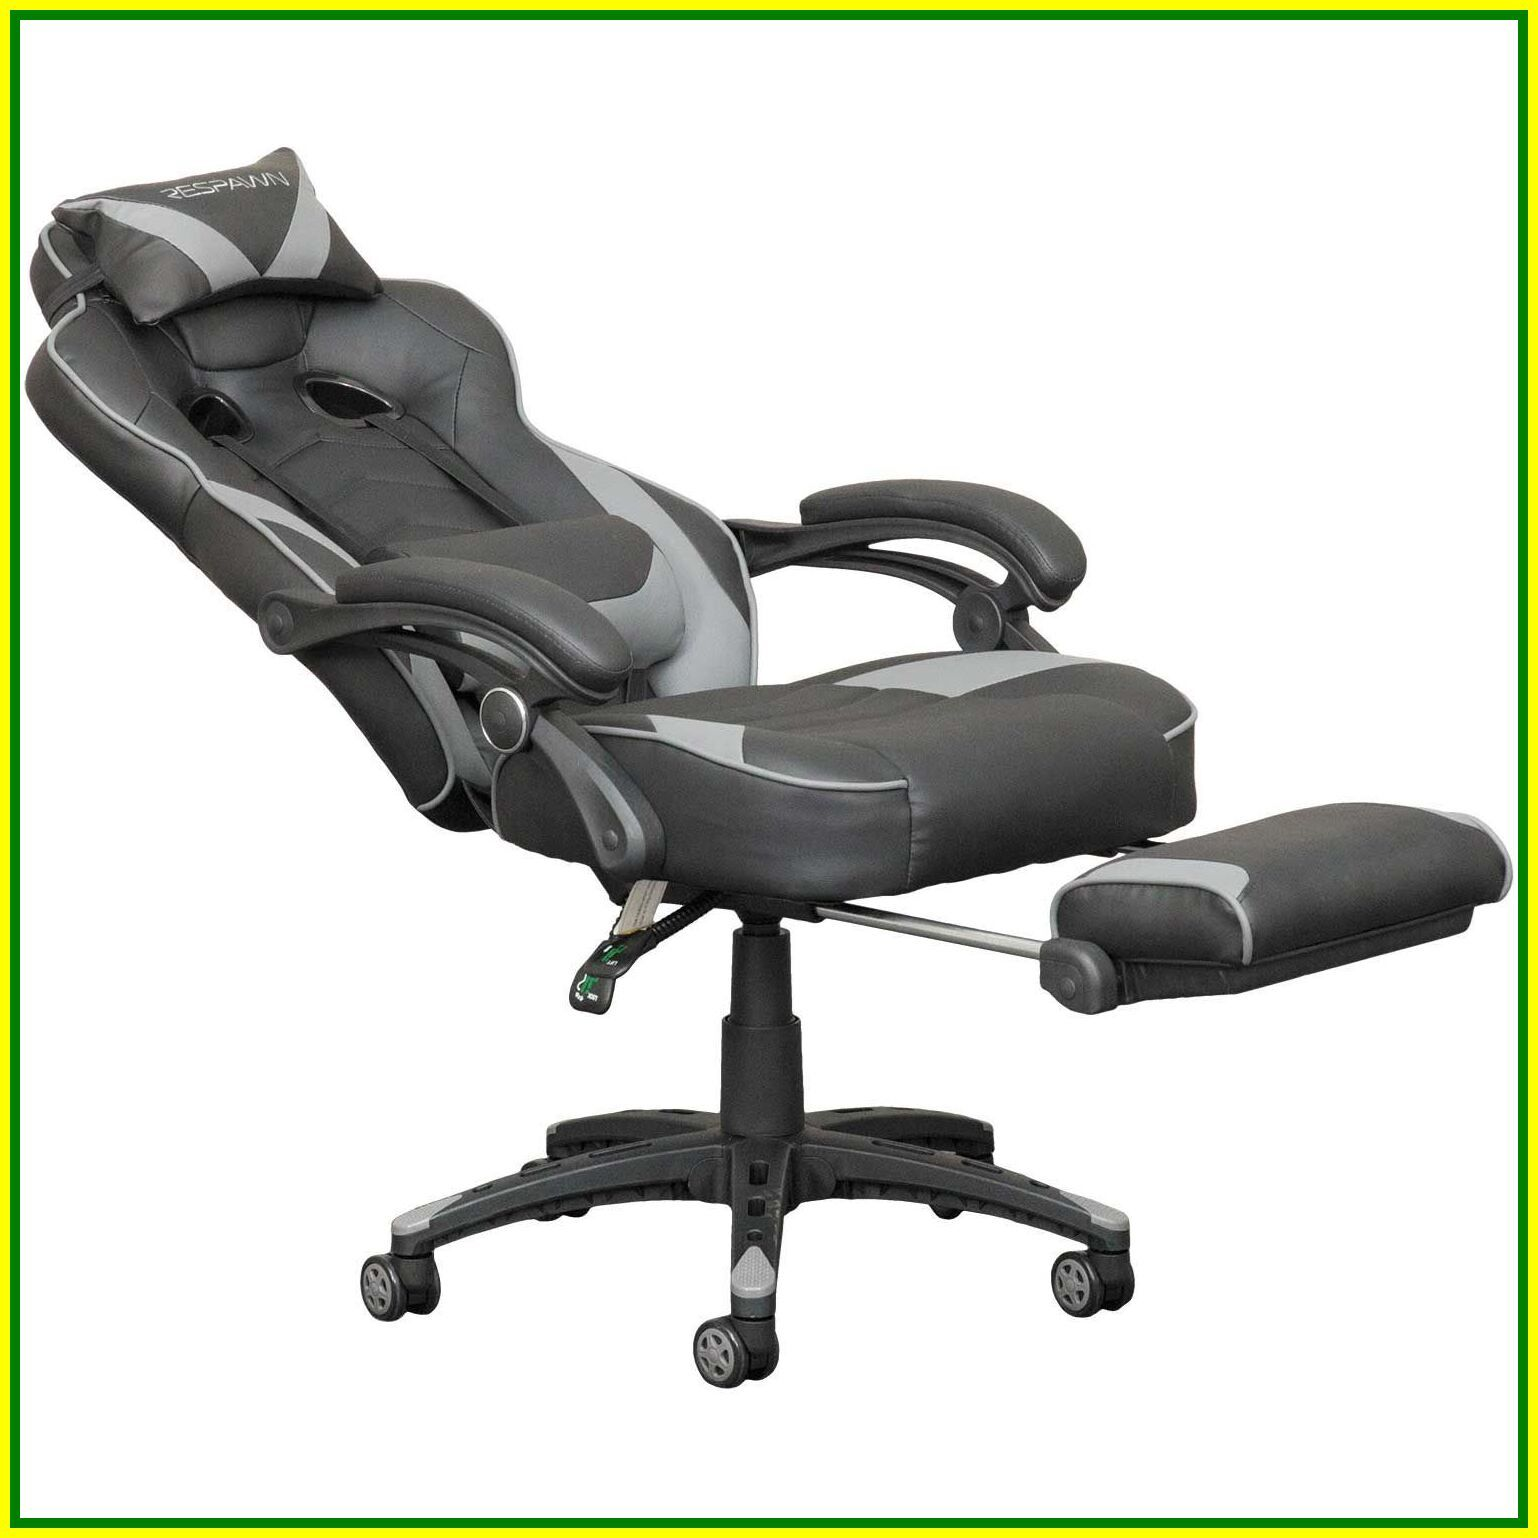 undercover camo recliner chair